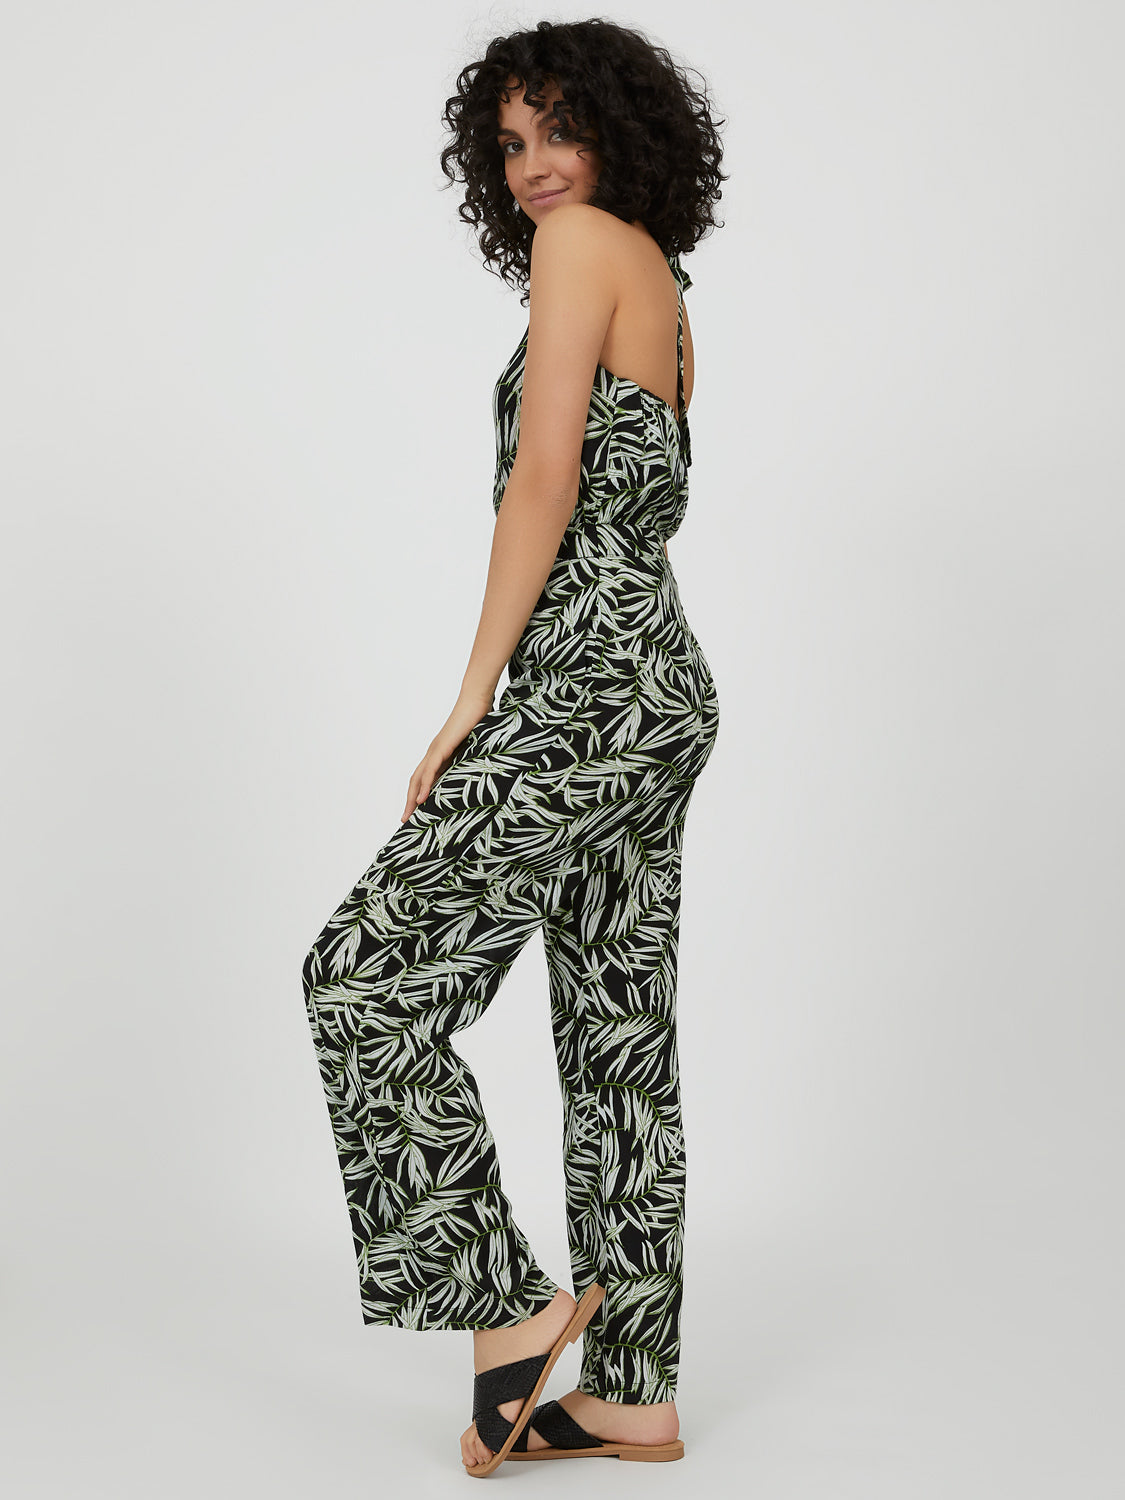 Belted Tropical Print Halter Neck Jumpsuit